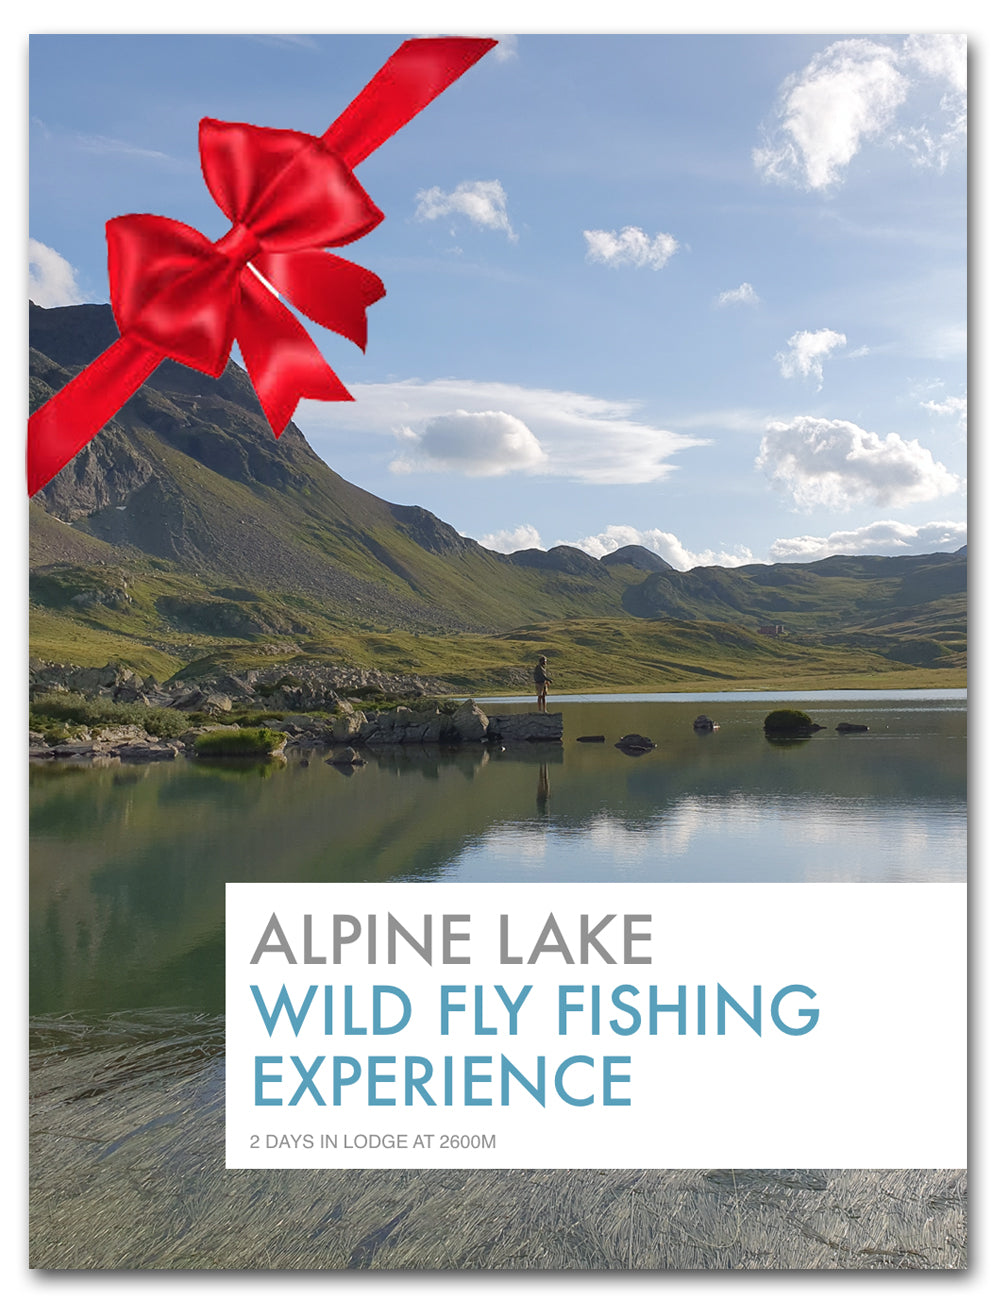 Alpine Lake 2 day Experience - Whieldon Fly Fishing